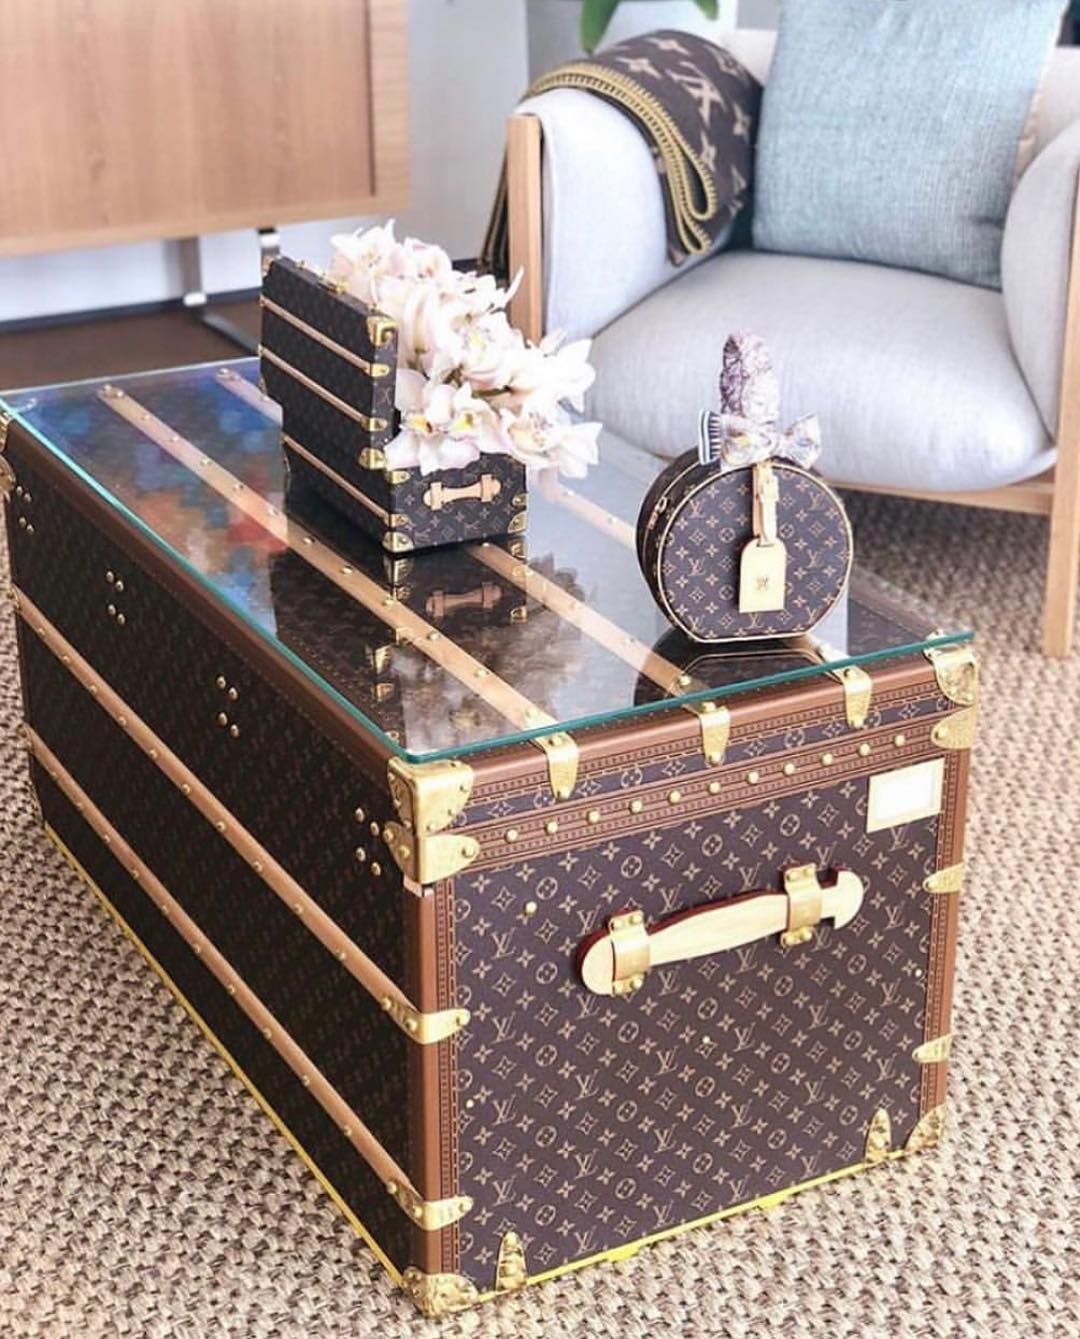 Louis Vuitton On Instagram What A Coffee Table Should Look Like Louisvuitton Style Louis Vuitton Trunk Replica Handbags Vintage Louis Vuitton #trunks #for #living #room